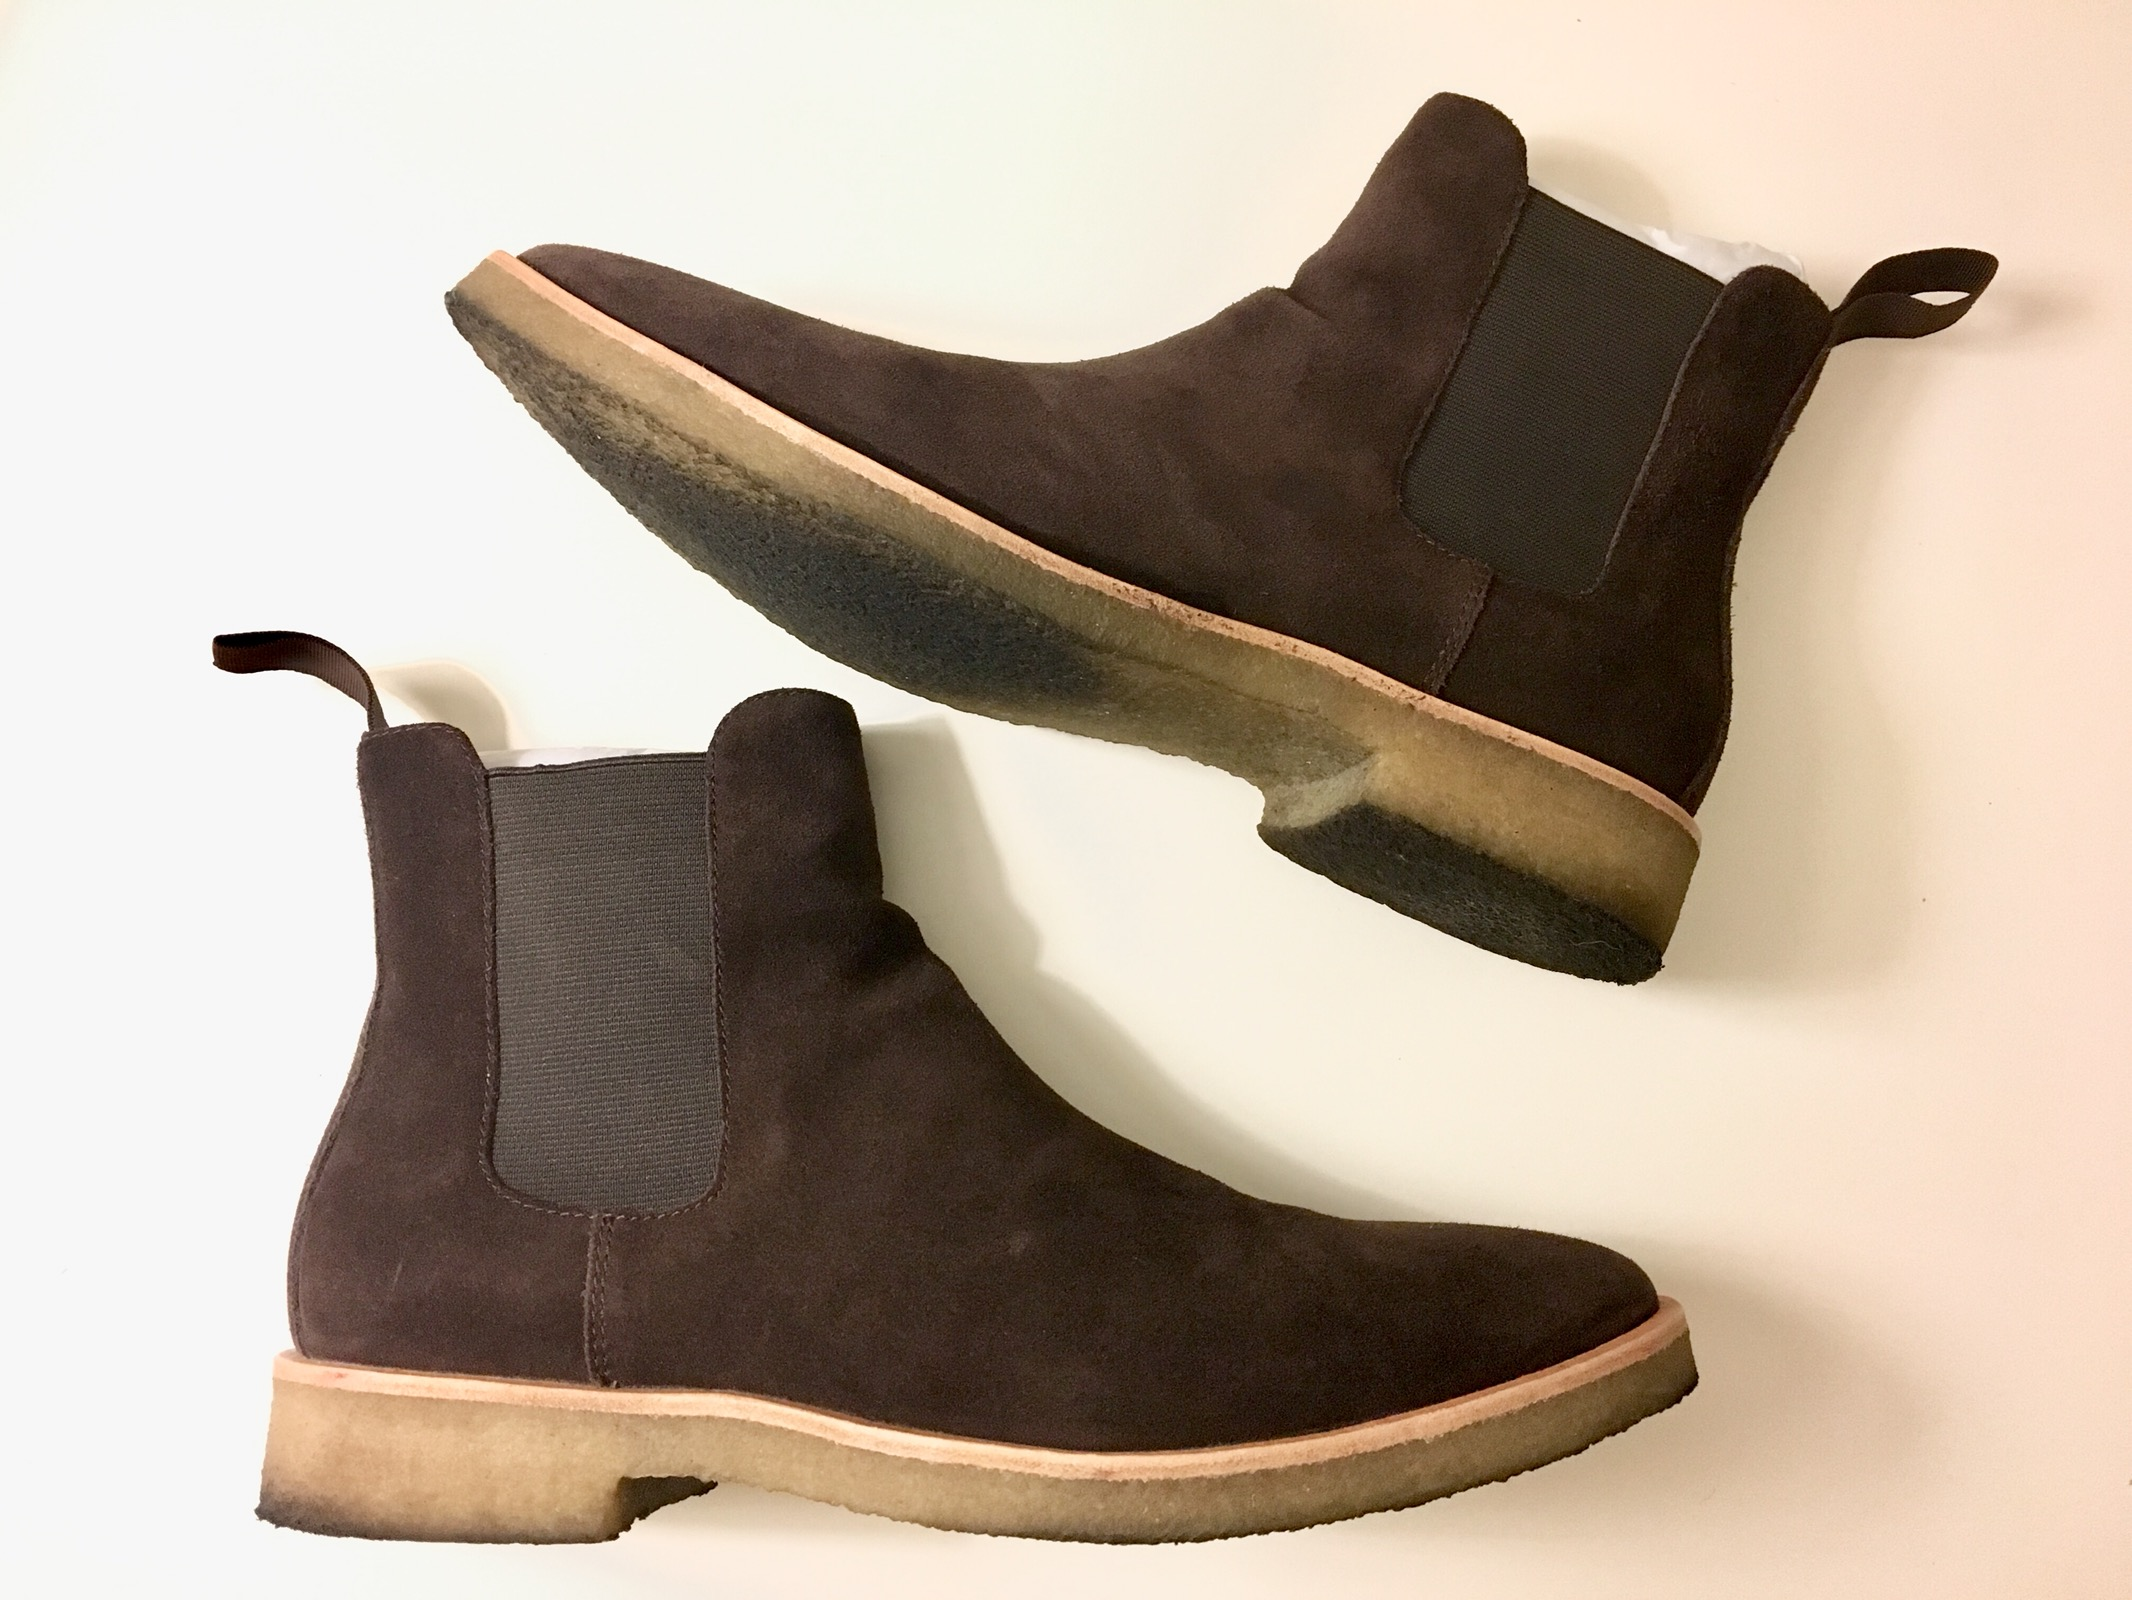 c9d4a2ac1f61f5 Mark Mcnairy New Amsterdam Mark McNairy New Republic Man Brown Suede  Houston Chelsea Boots Size 9.5 Mens US Size 9.5 - Boots for Sale - Grailed